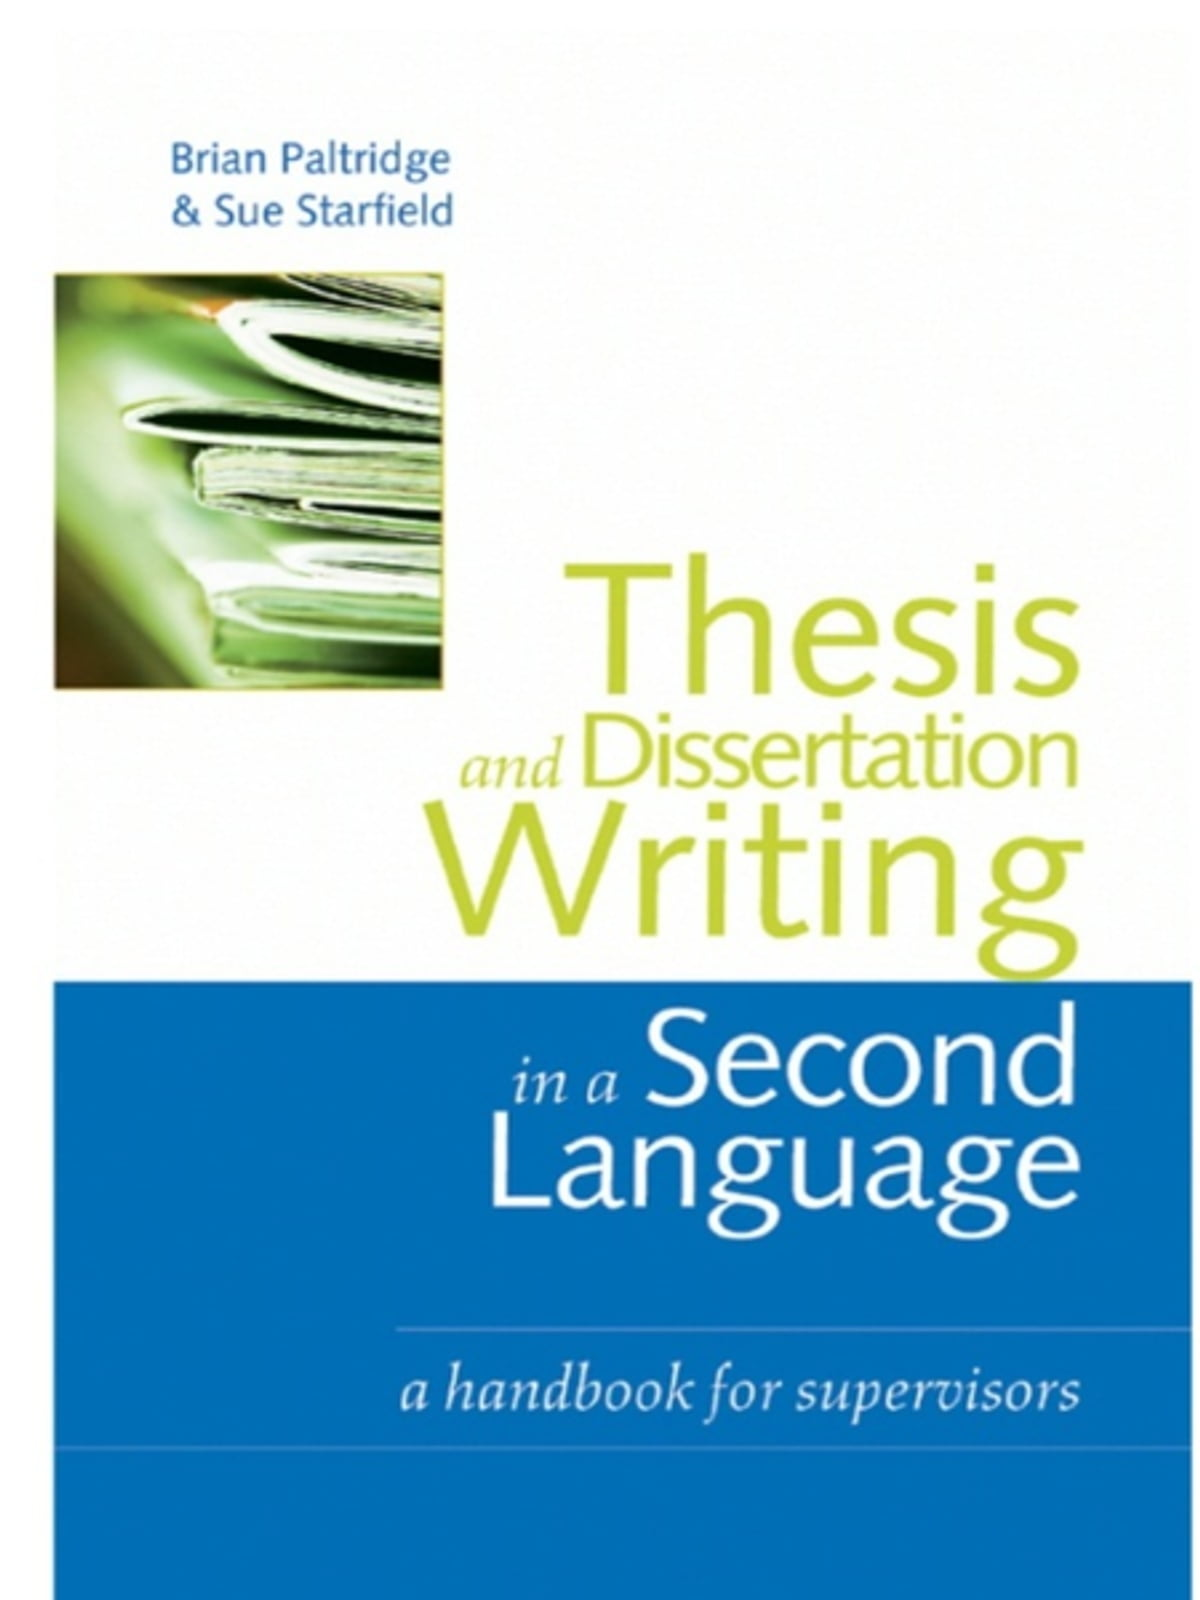 writing your thesis paul oliver free download